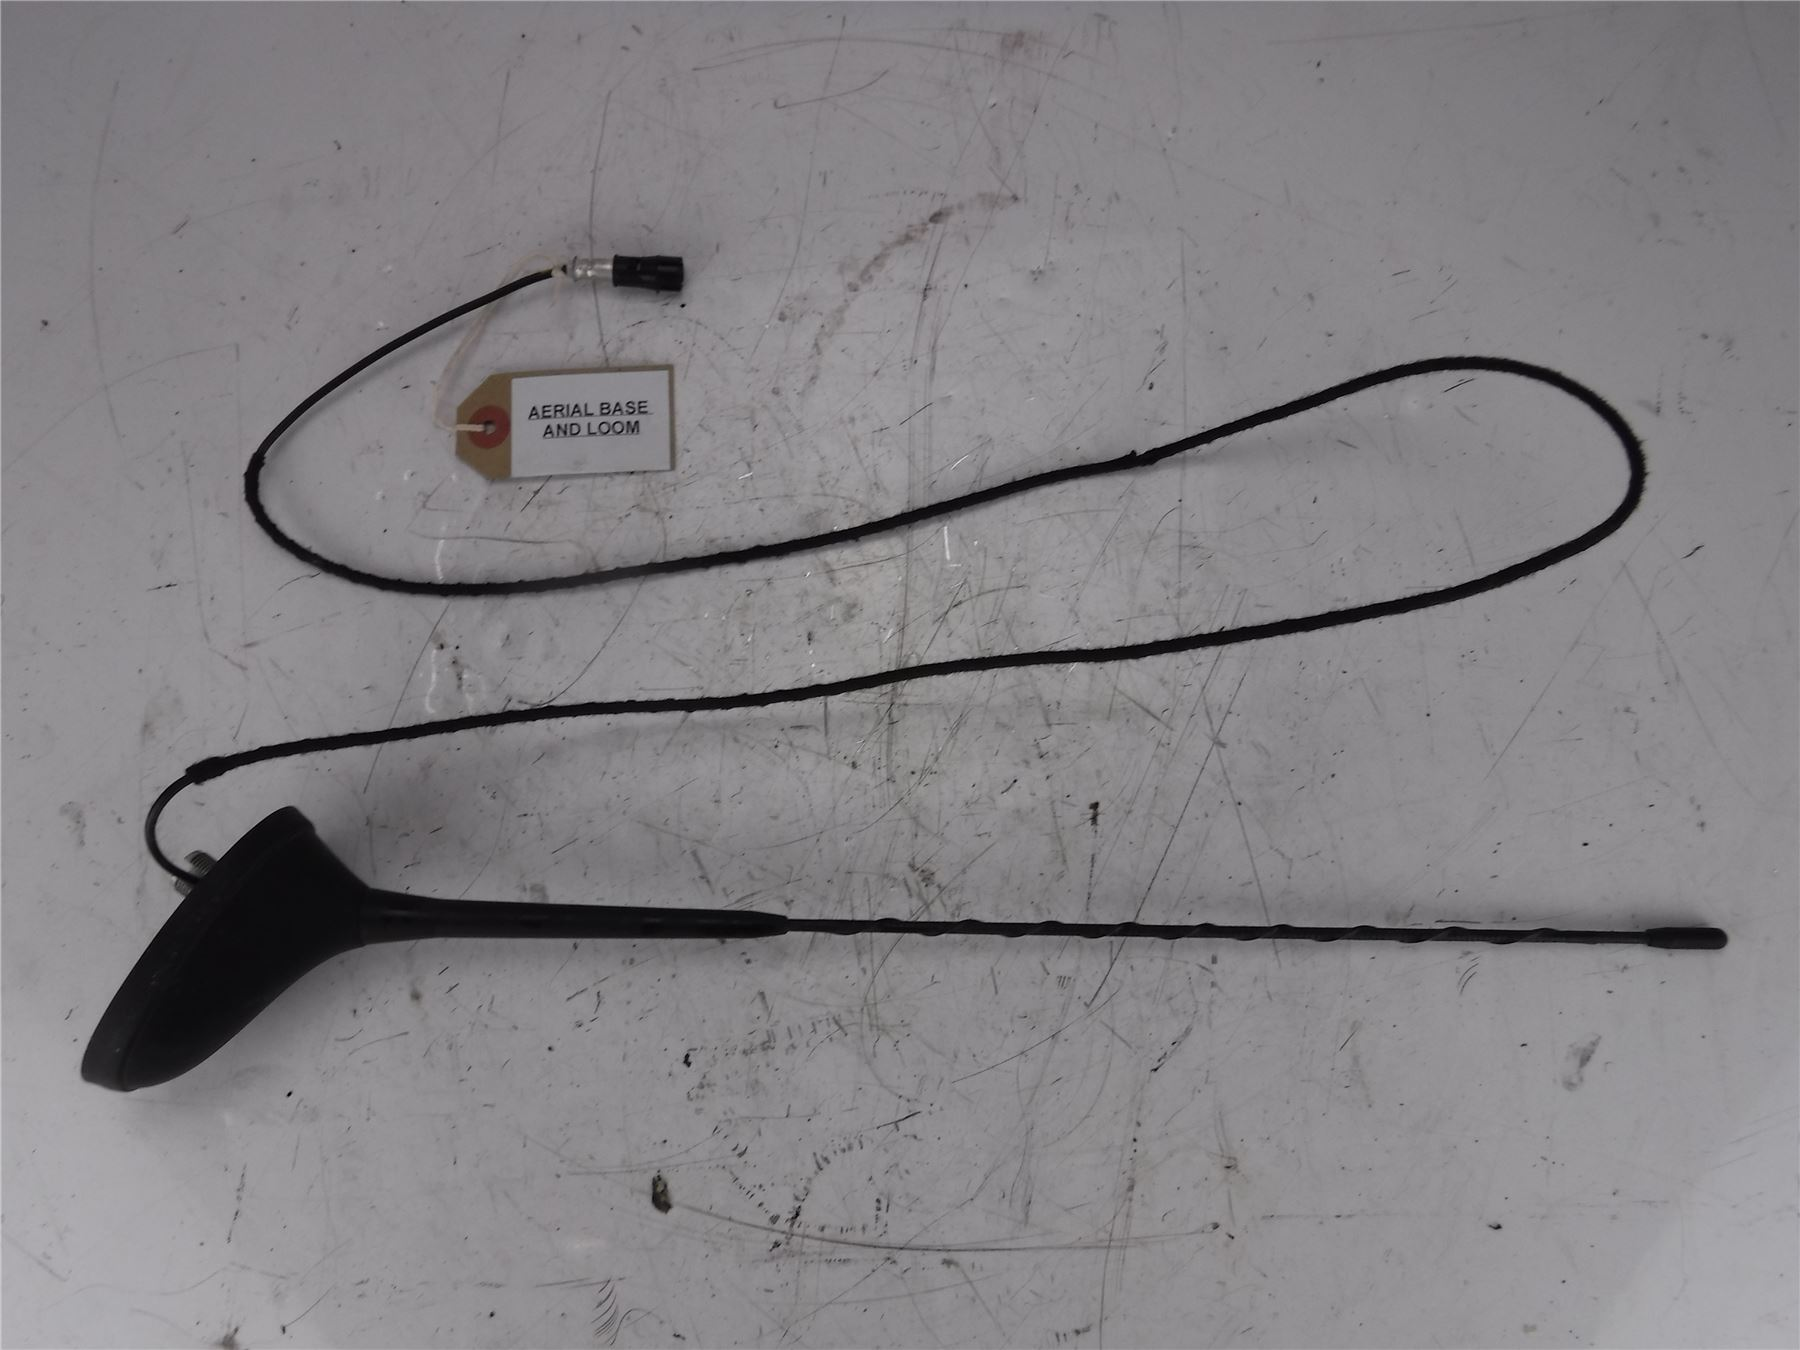 Peugeot 207 Verve 2009 Silver 3dr 14 Petrol Aerial Base And Loom Ebay Wiring